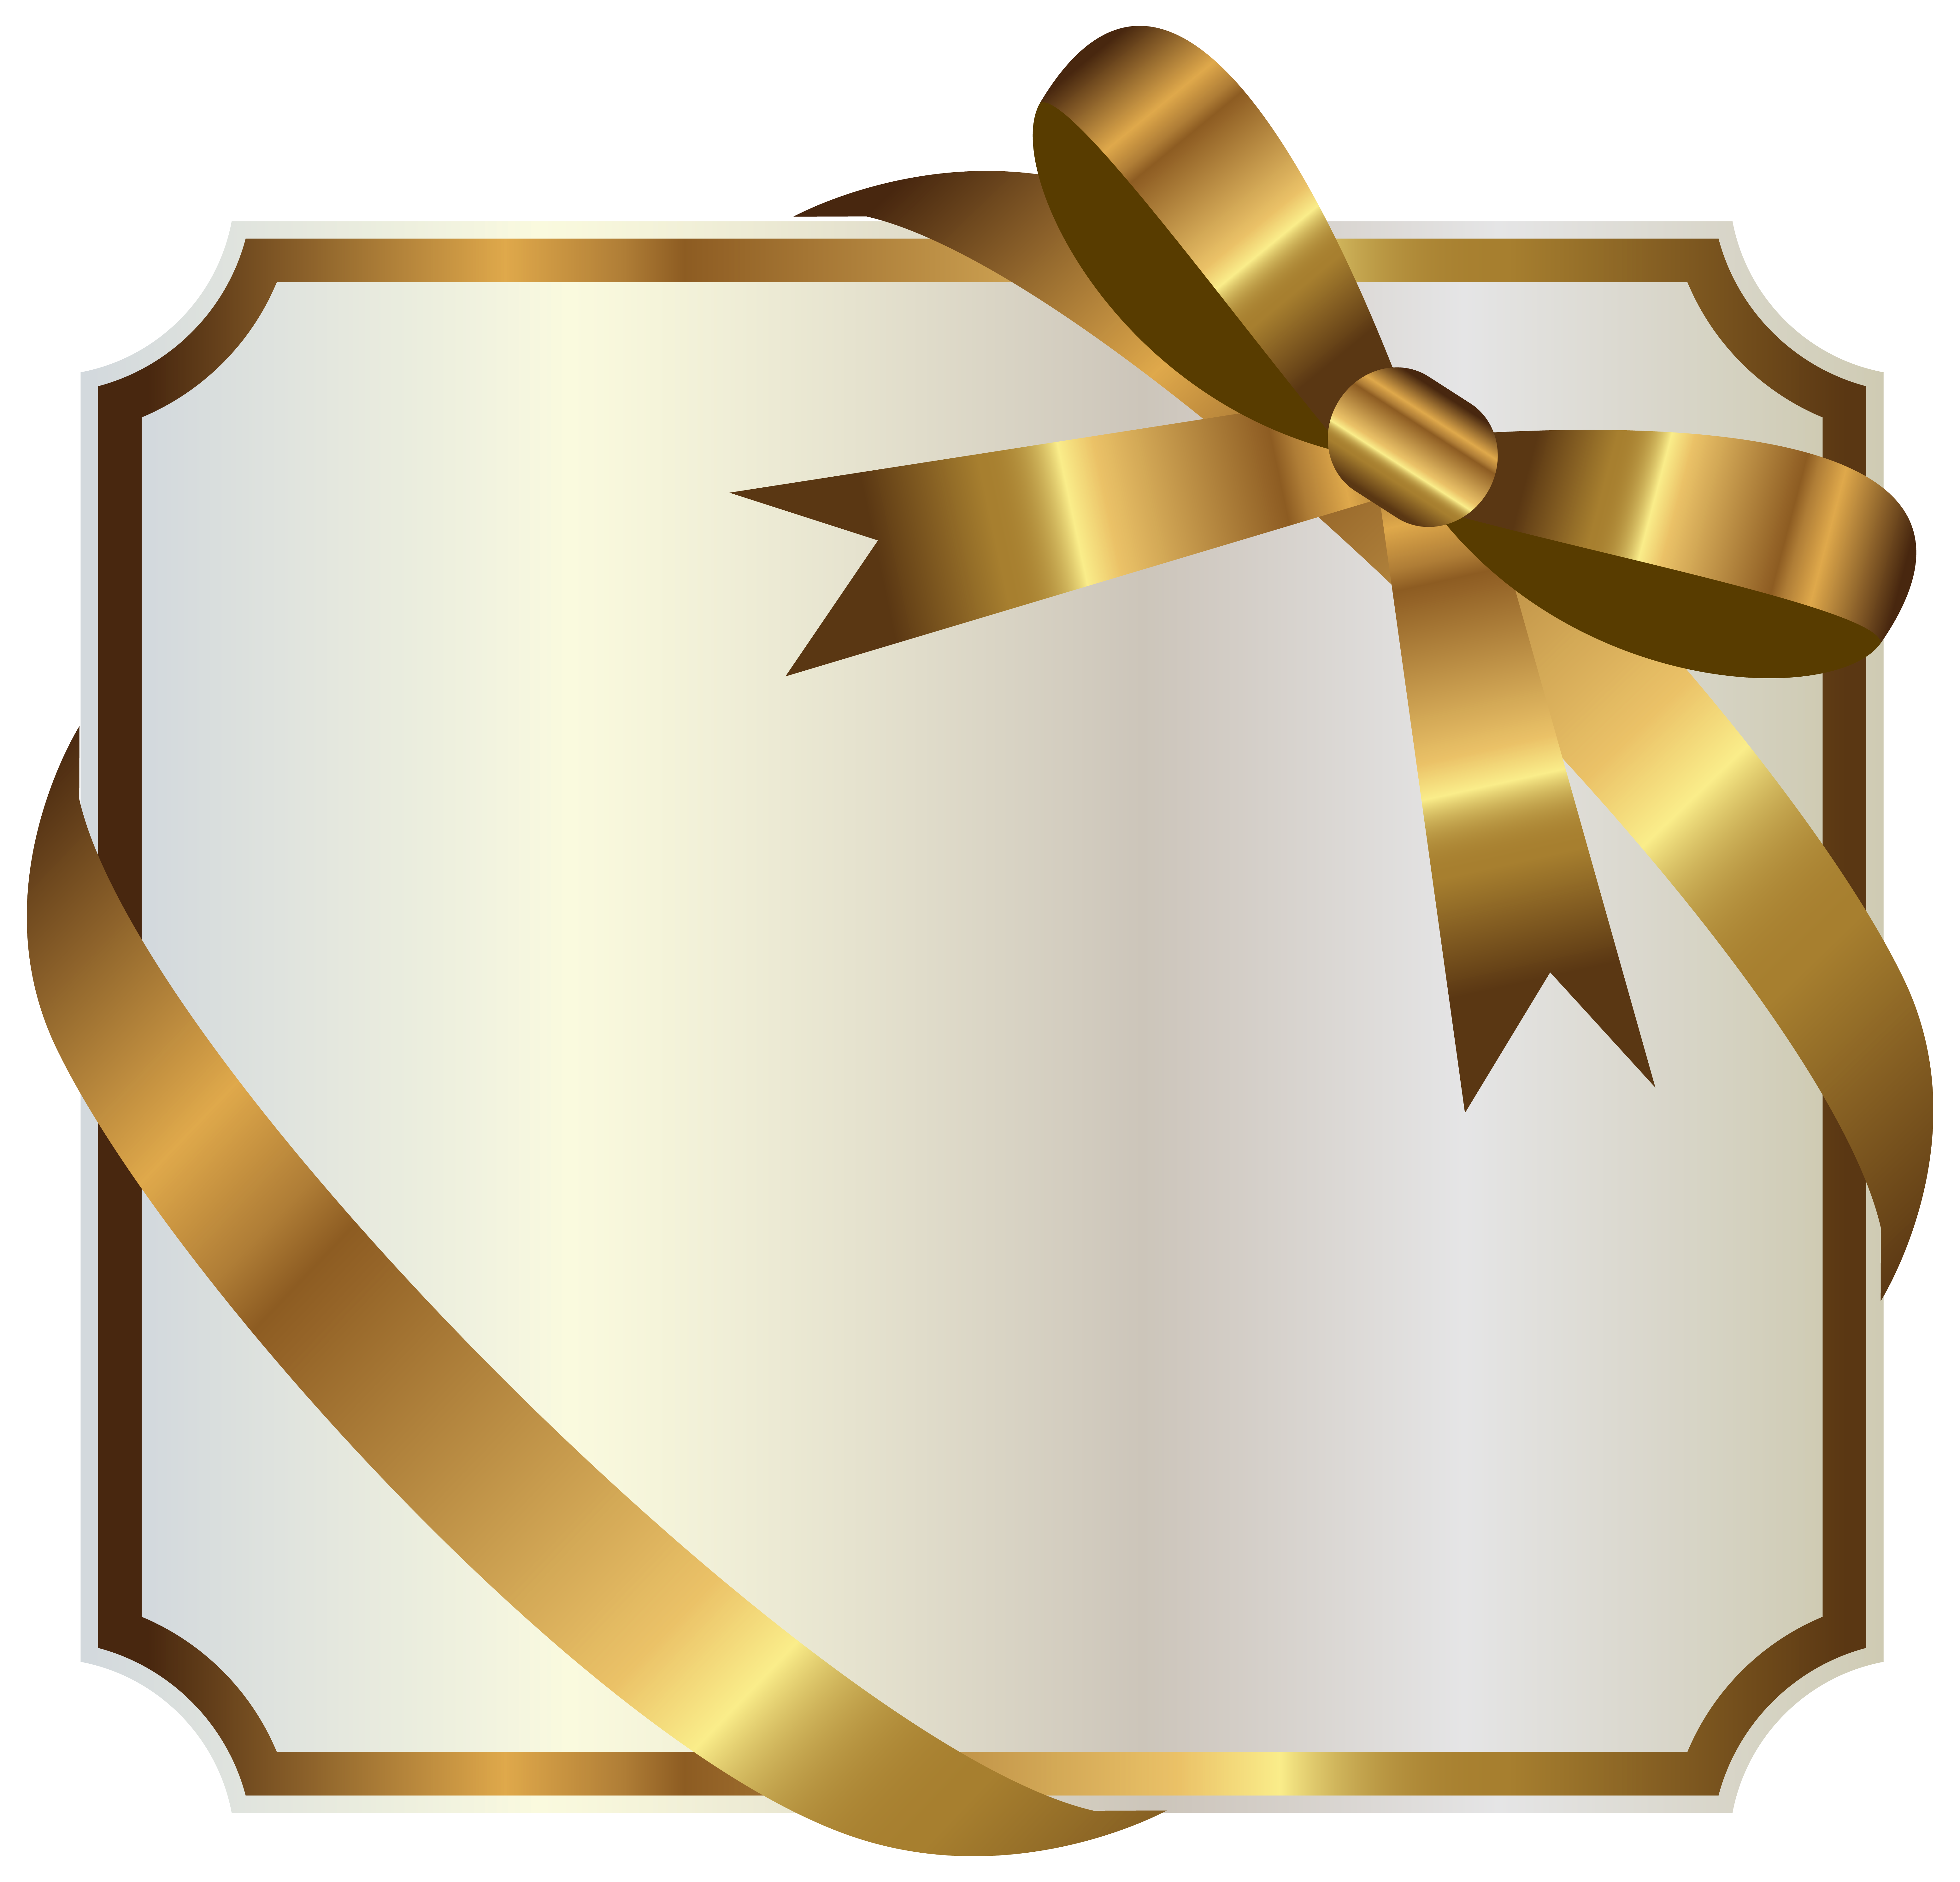 Anniversary celebration silver label and ribbon png. White with gold bow